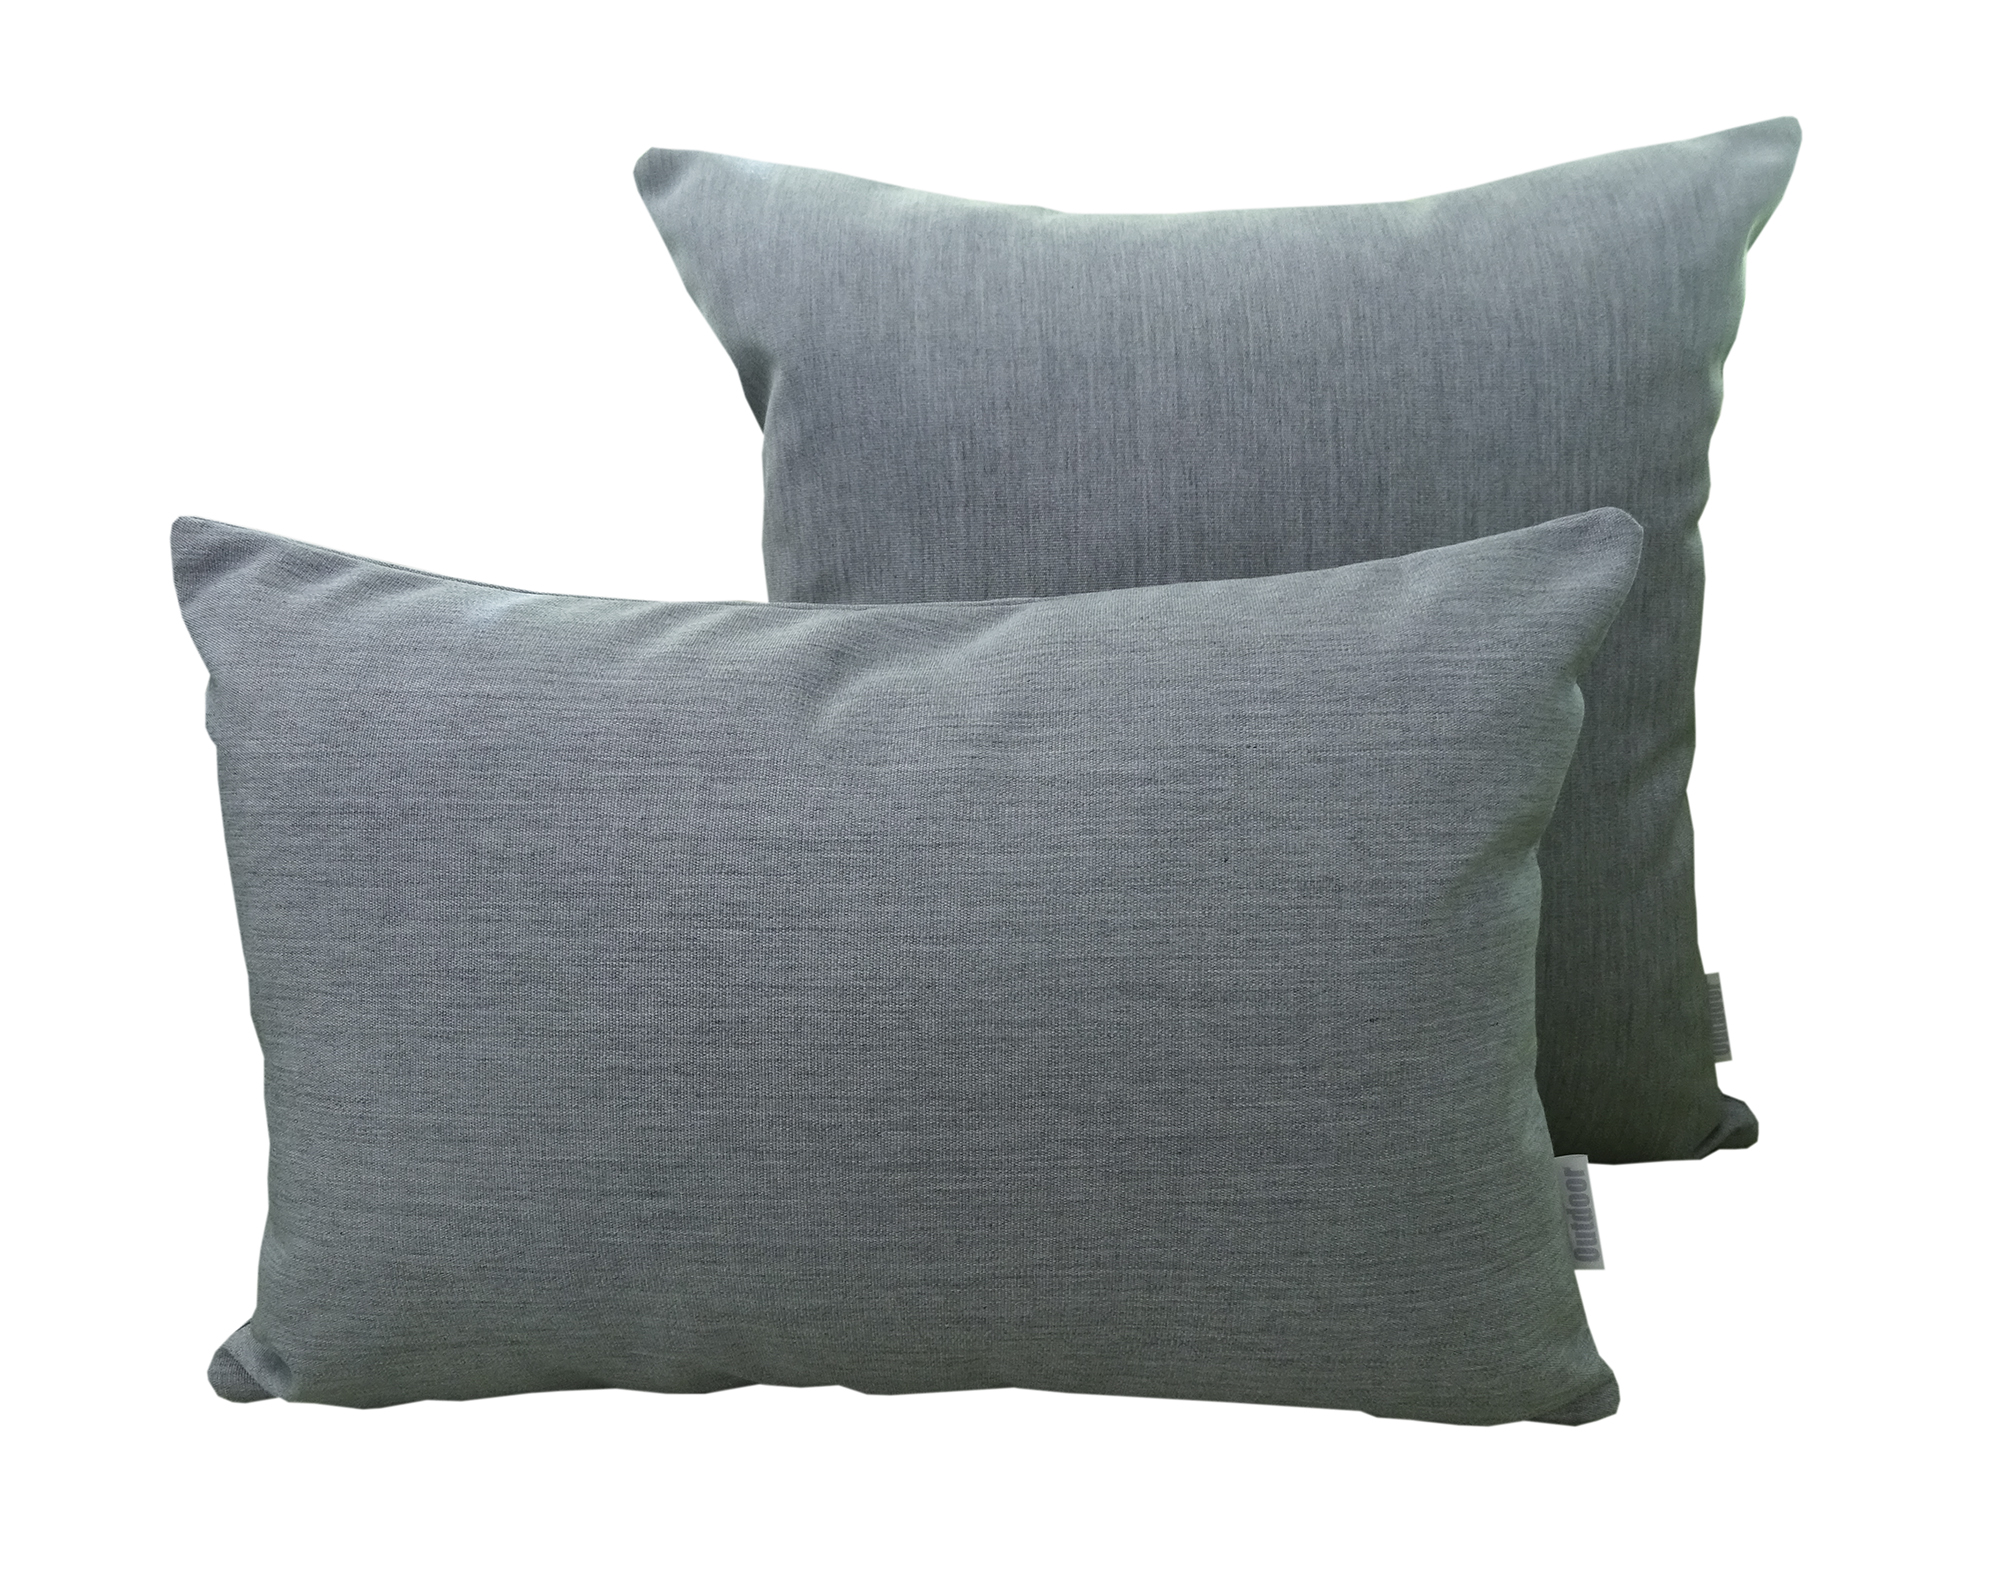 maxx zag multicoloured pillows tk cushion comfortable the factoryquot pillow gray quot factory grey outdoor zig of